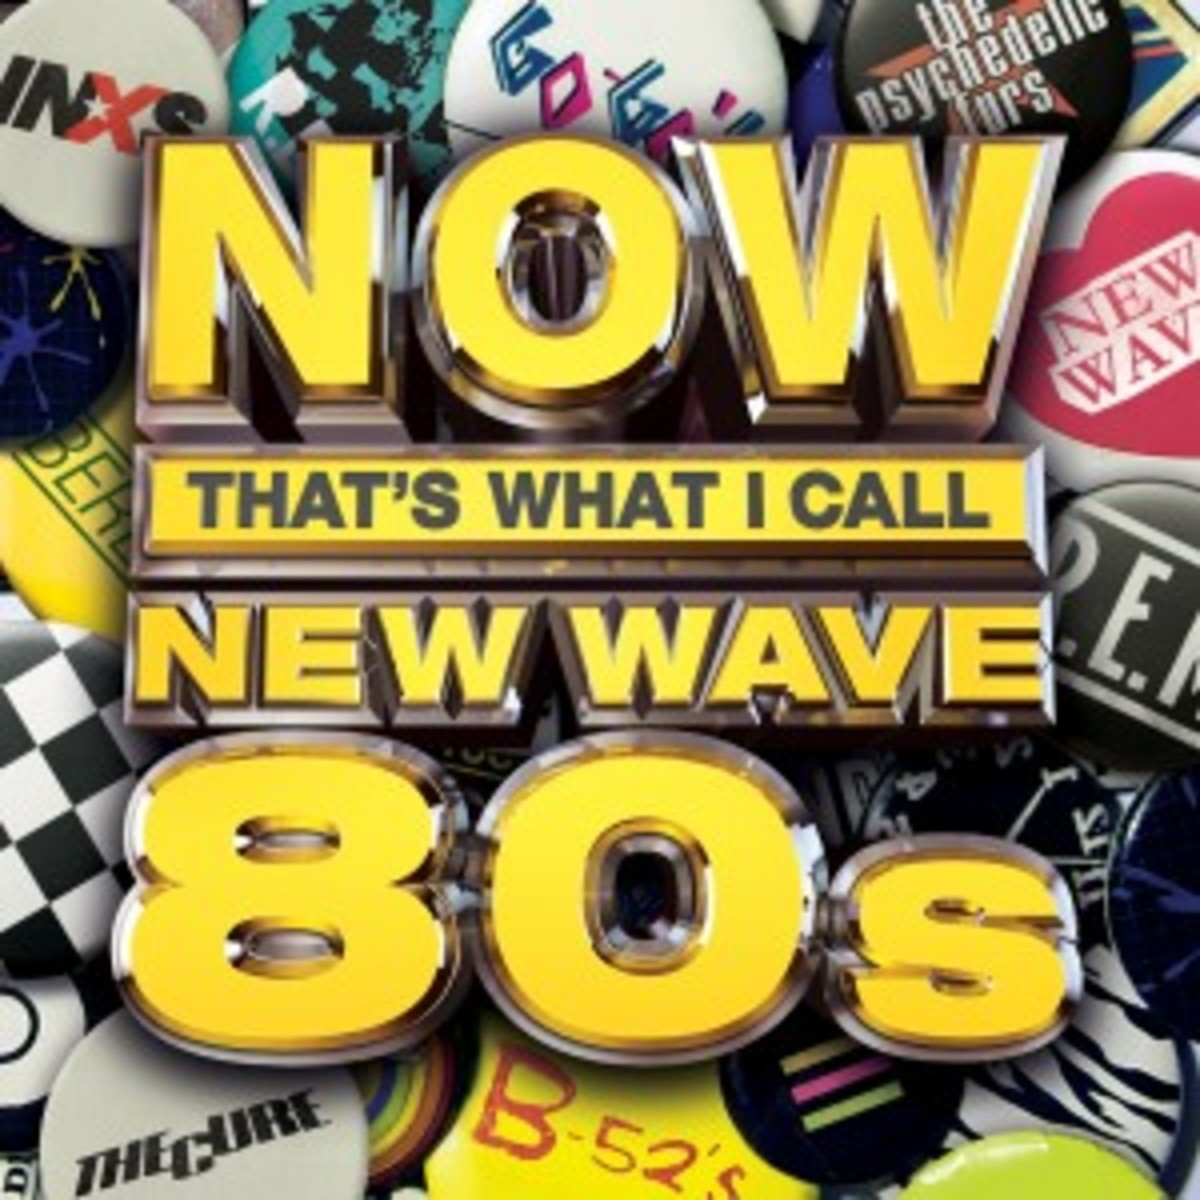 NOW NEW WAVE cover REVISED